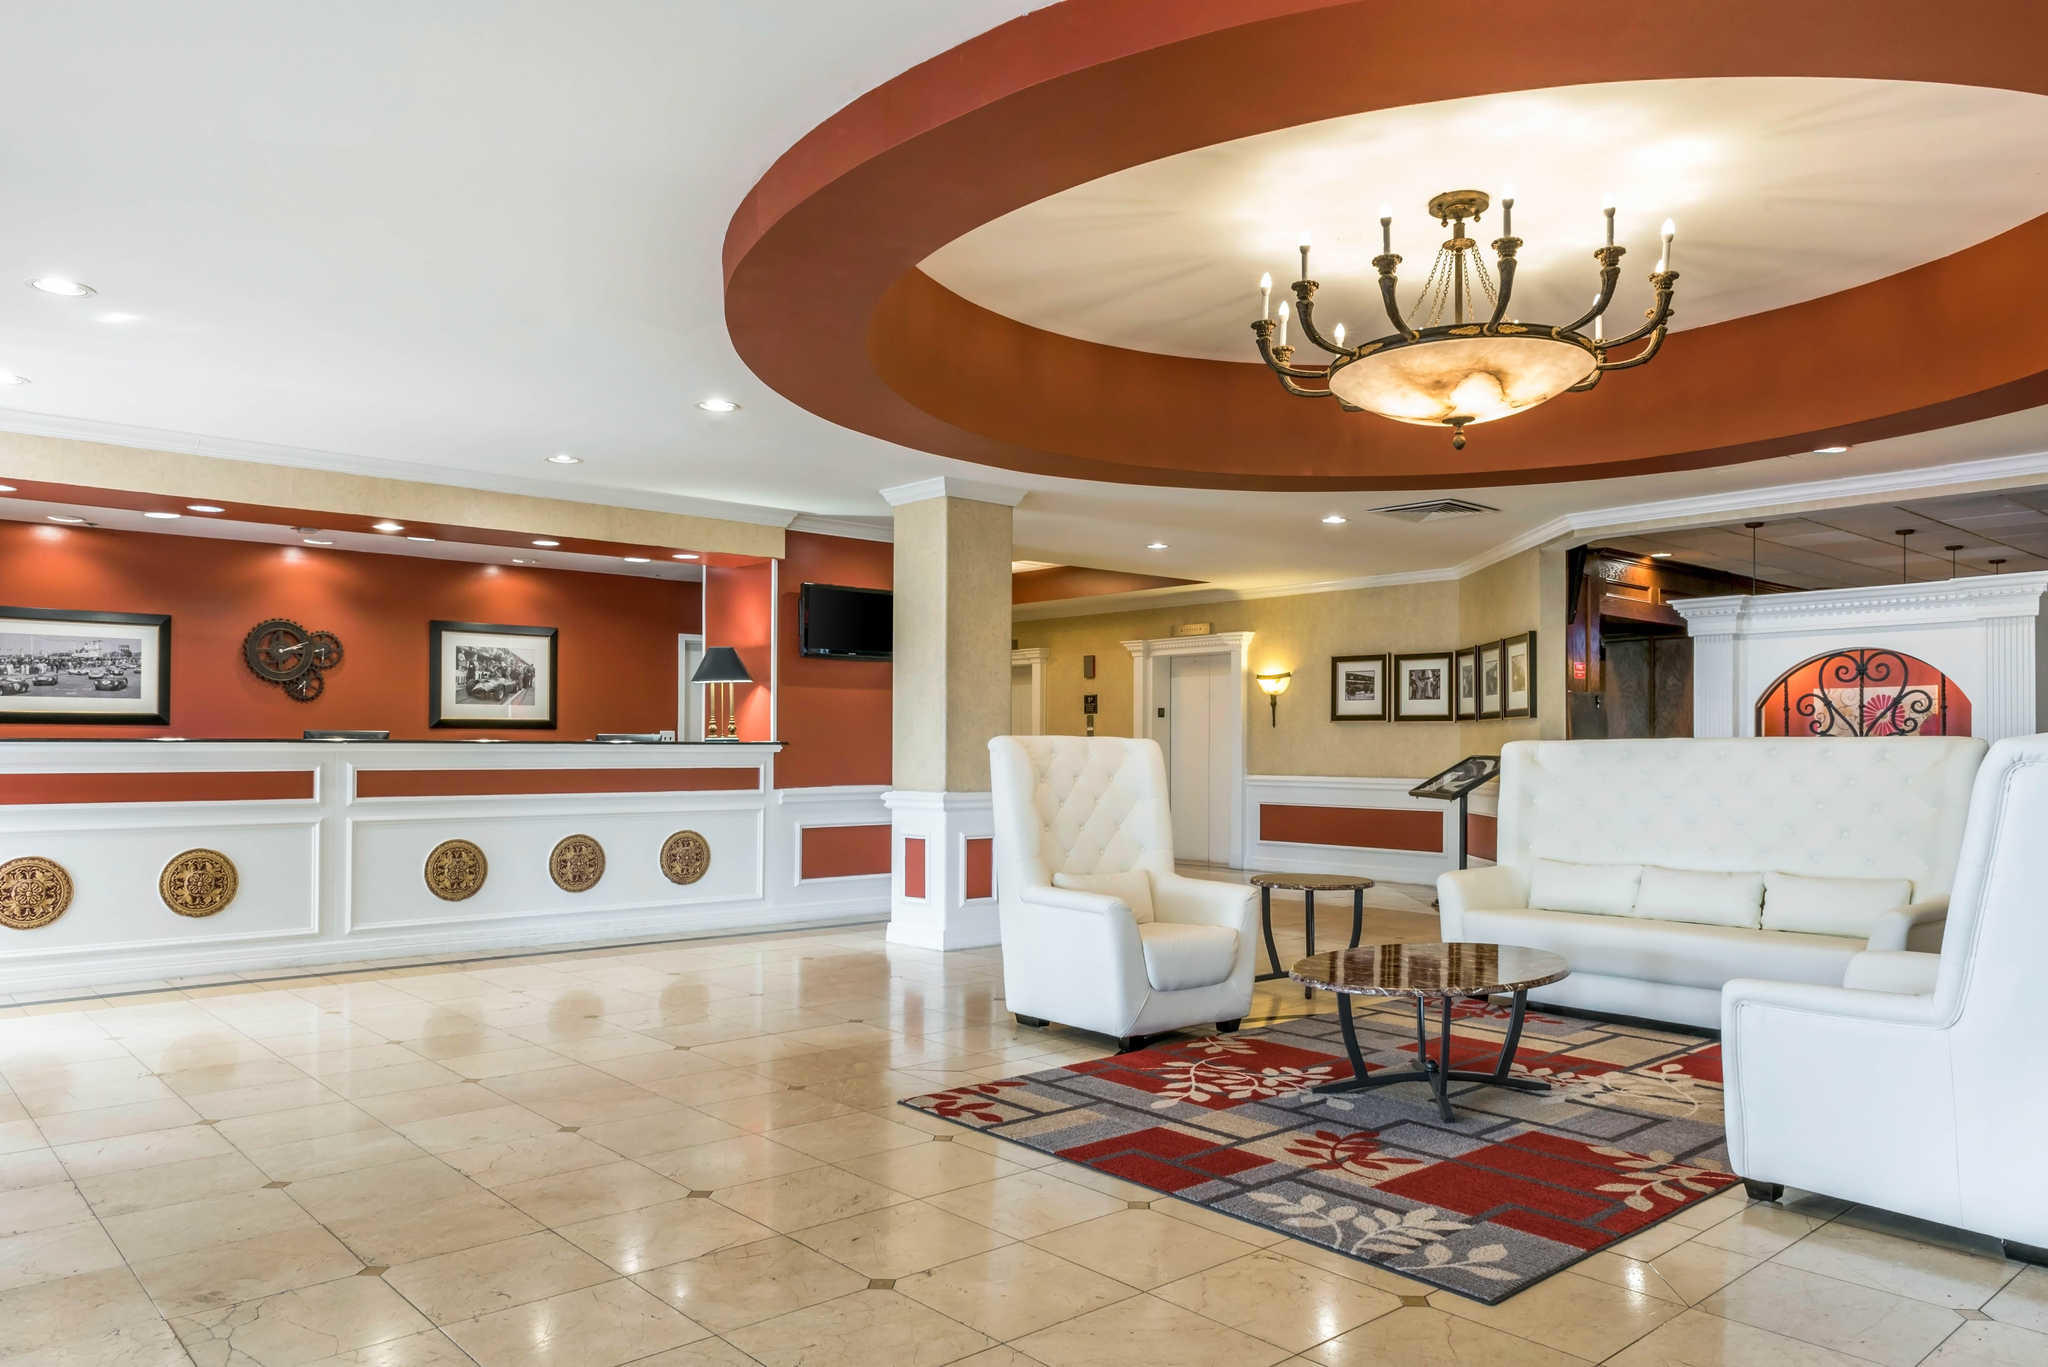 clarion hotel airport indianapolis indiana in. Black Bedroom Furniture Sets. Home Design Ideas